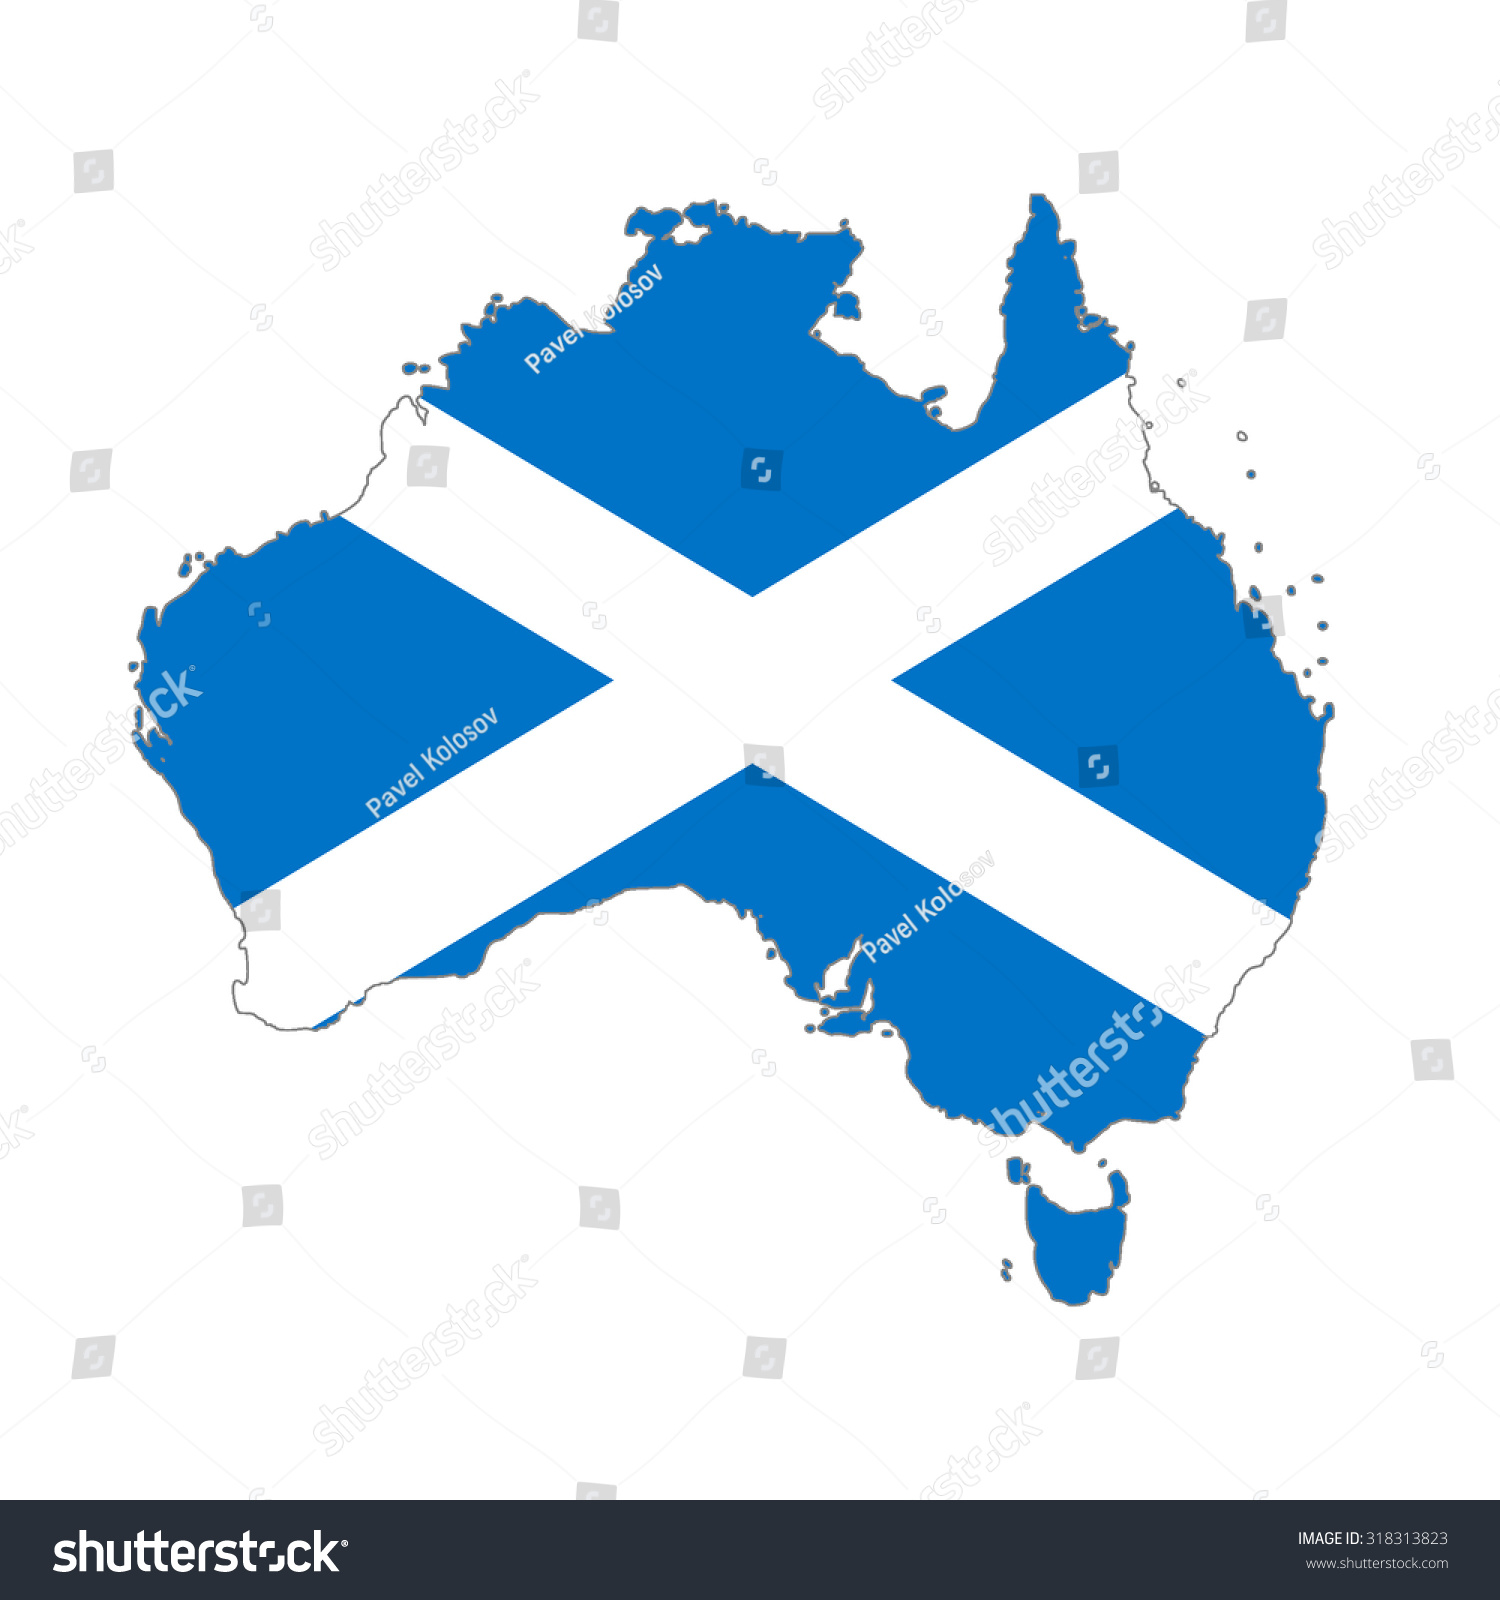 map australia scotland flag colors scotch stock illustration